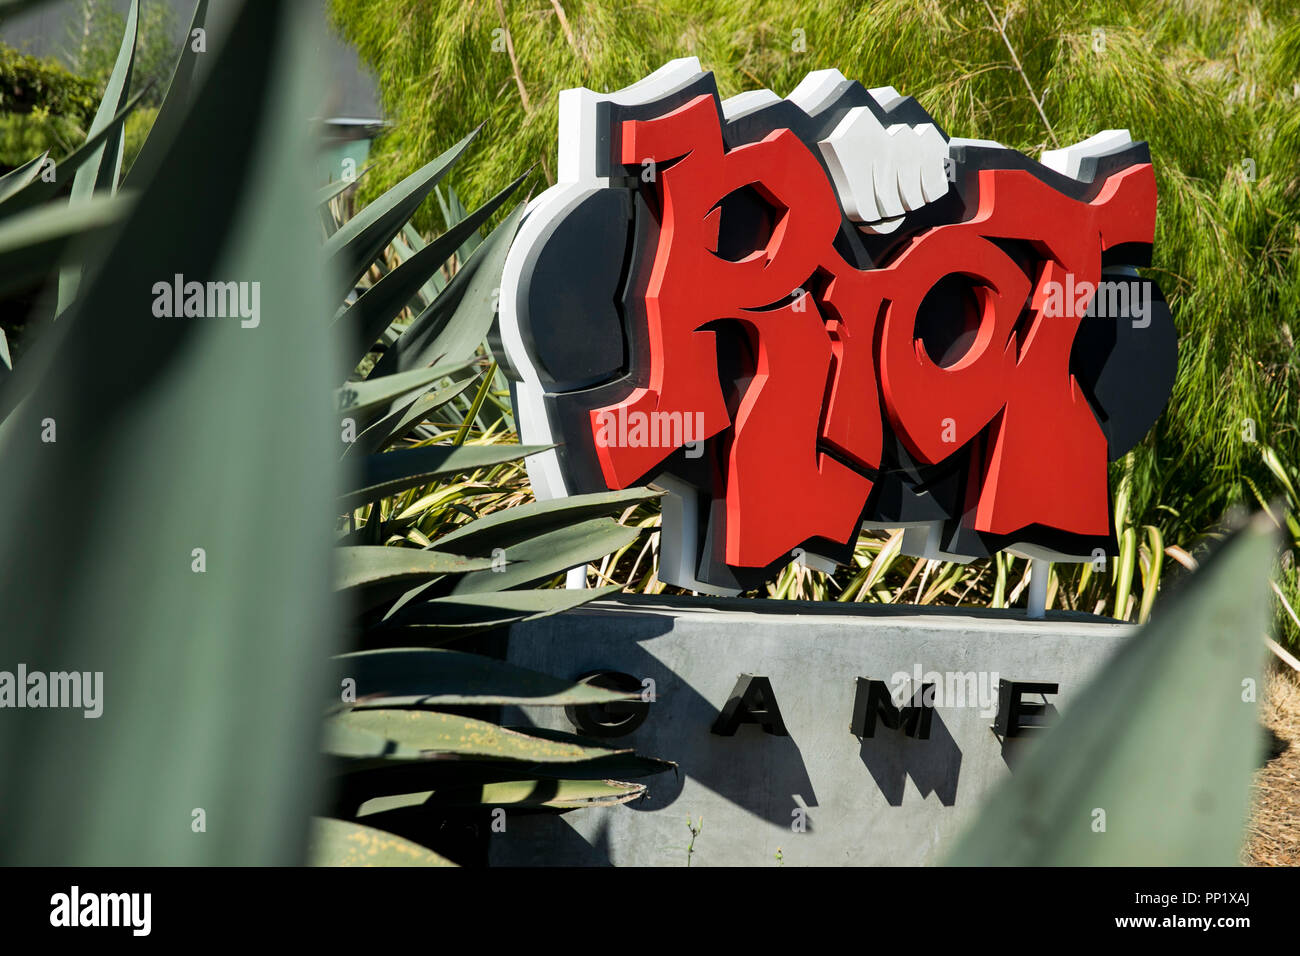 A logo sign outside of the headquarters of Riot Games, Inc., in Los Angeles, California on September 15, 2018. - Stock Image